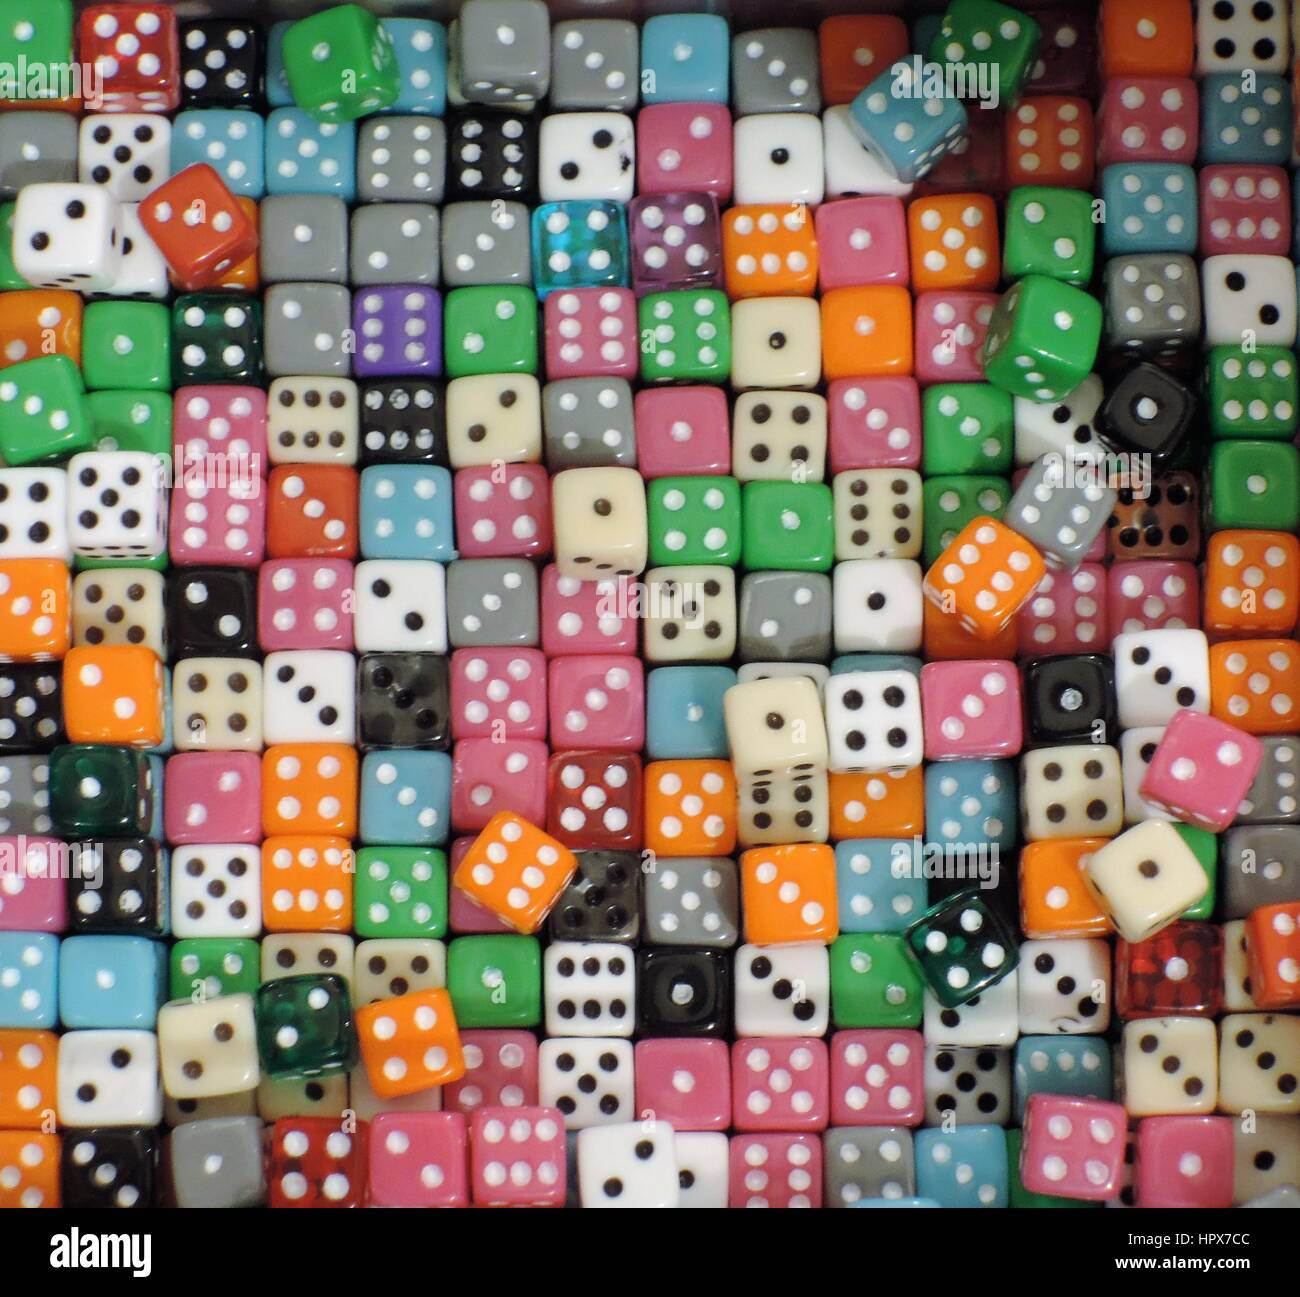 Traditional Dice - Stock Image